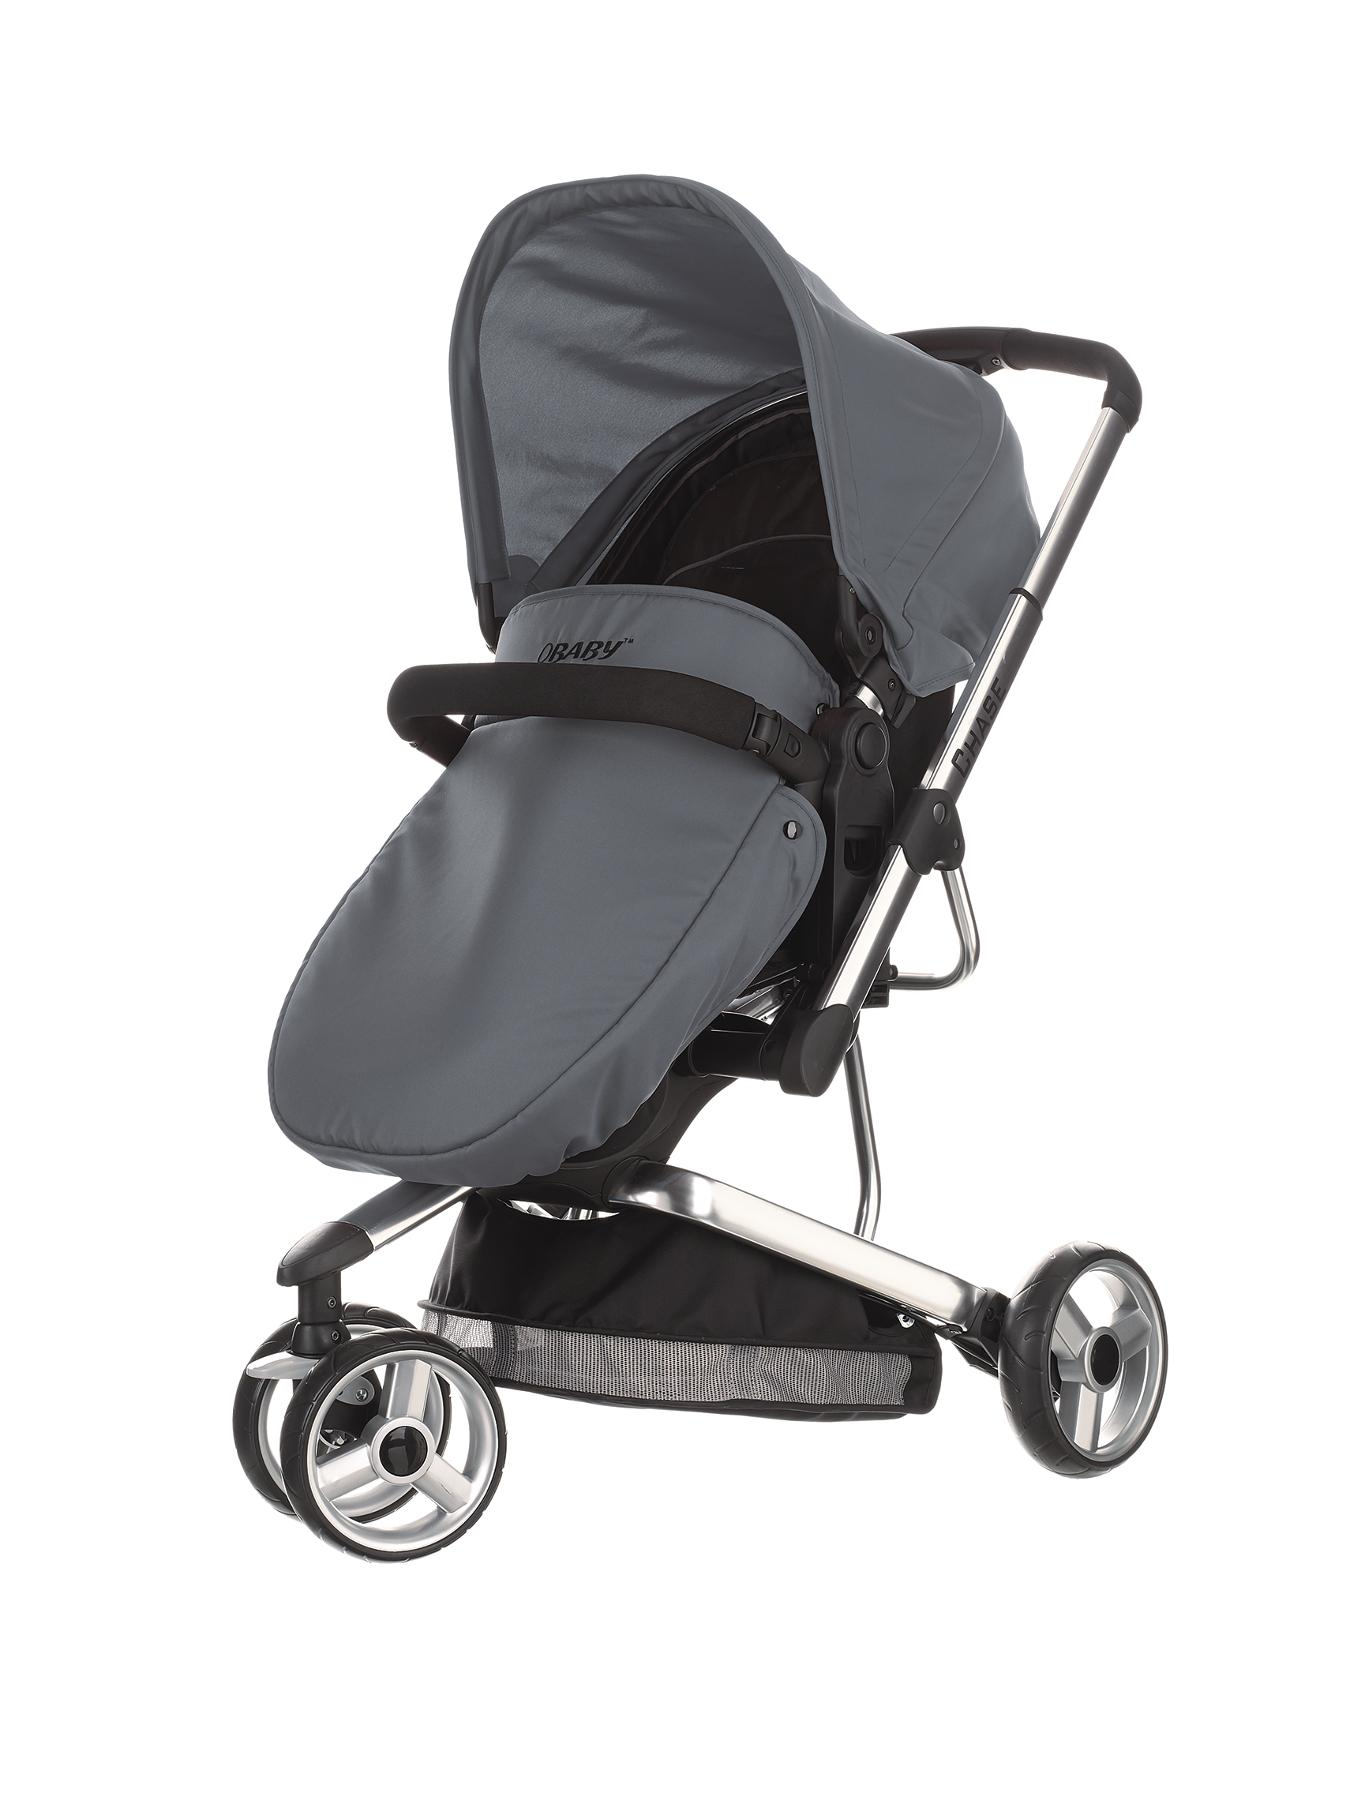 Obaby Chase 3 Wheel Pramette - Grey, Grey,Lime,Turquoise,Pink,Red,Purple